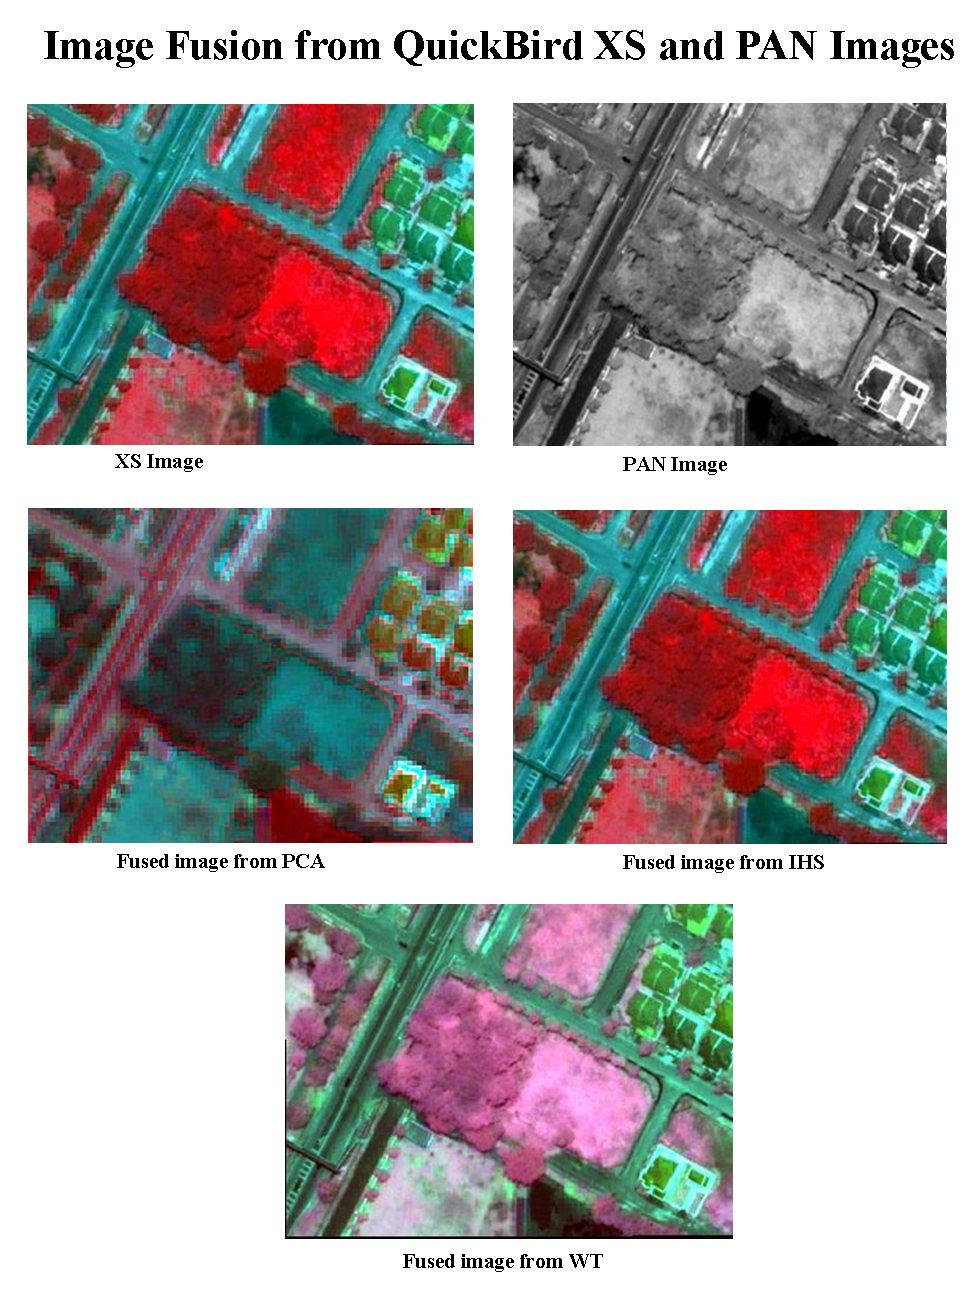 Comparison of Three Image Fusion Techniques Employed on High Resolution QuickBird Images